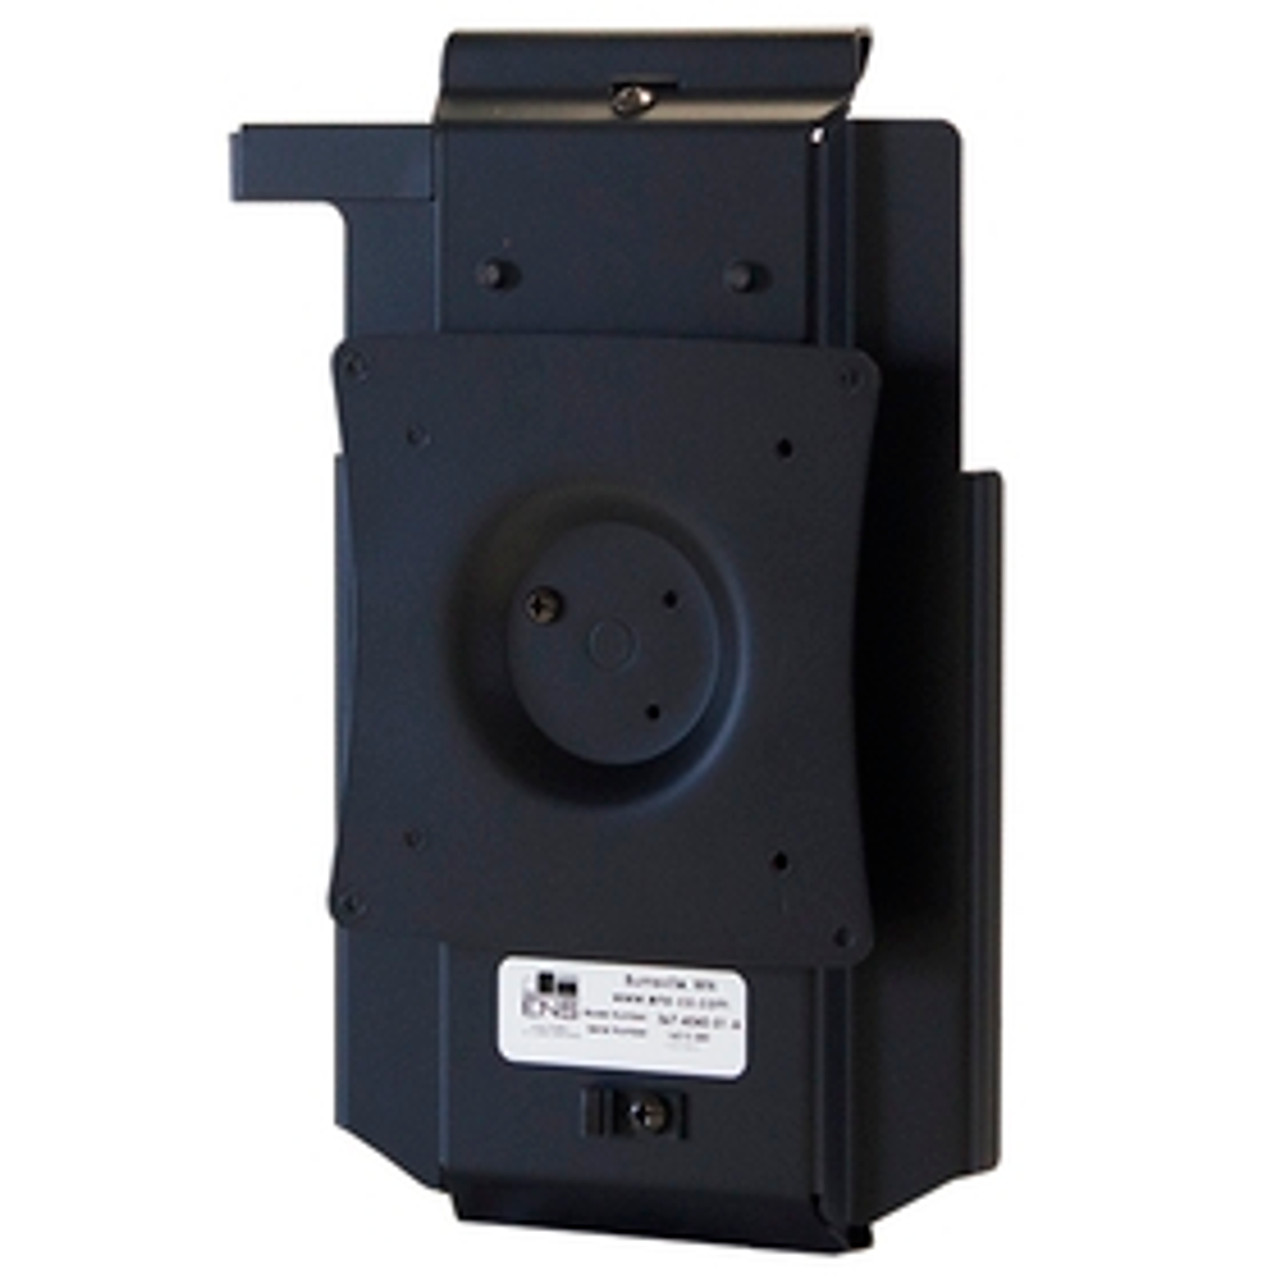 POS Tablet Enclosure with Vesa Interface Plate for Dell Venue 8 Pro